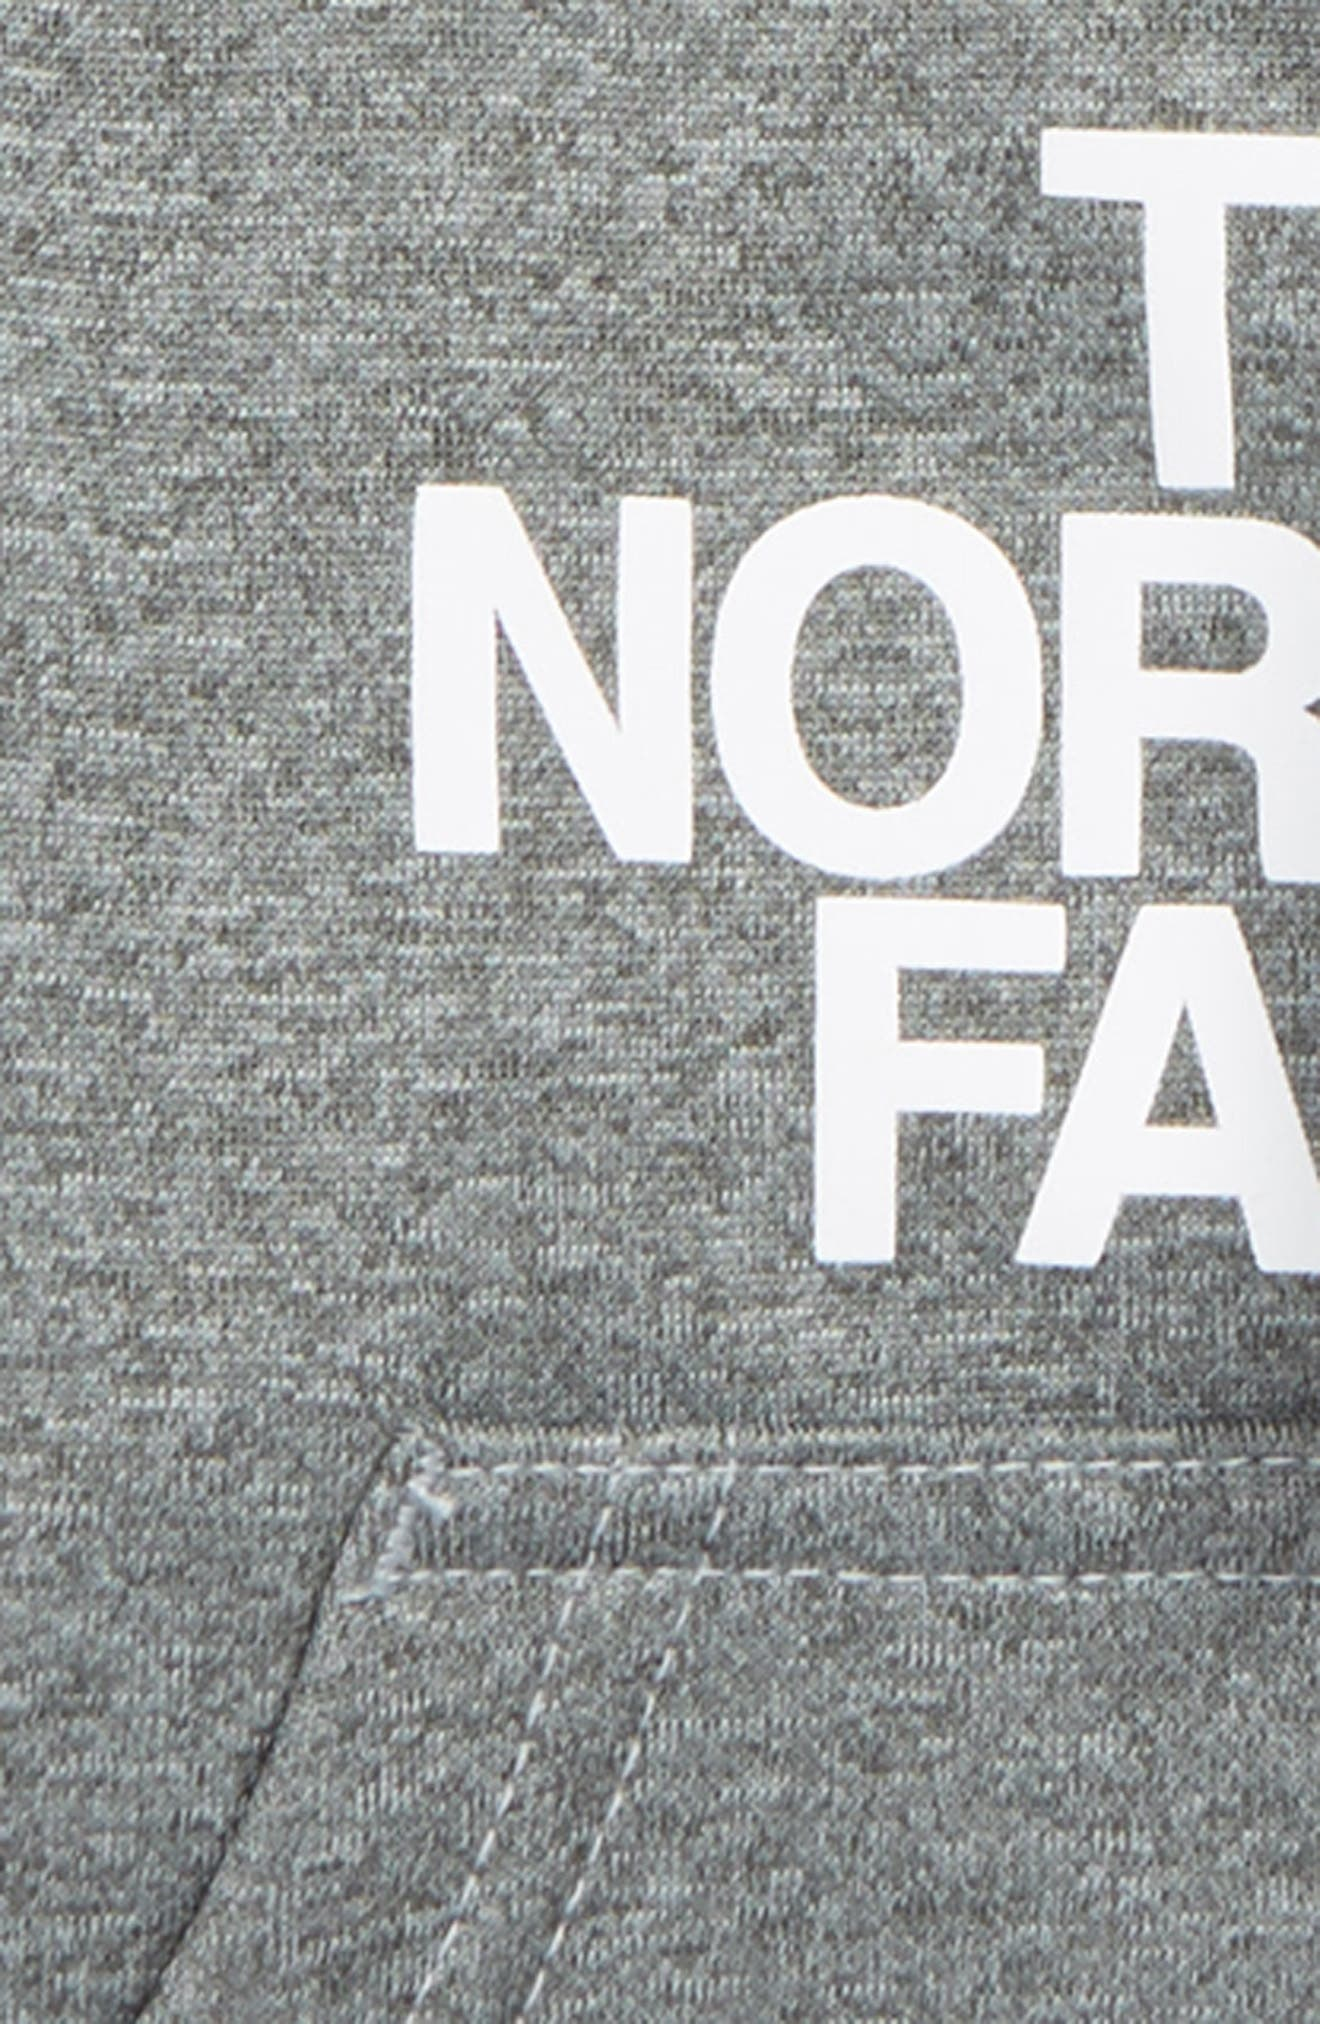 THE NORTH FACE,                             Surgent Full-Zip Hoodie,                             Alternate thumbnail 2, color,                             030